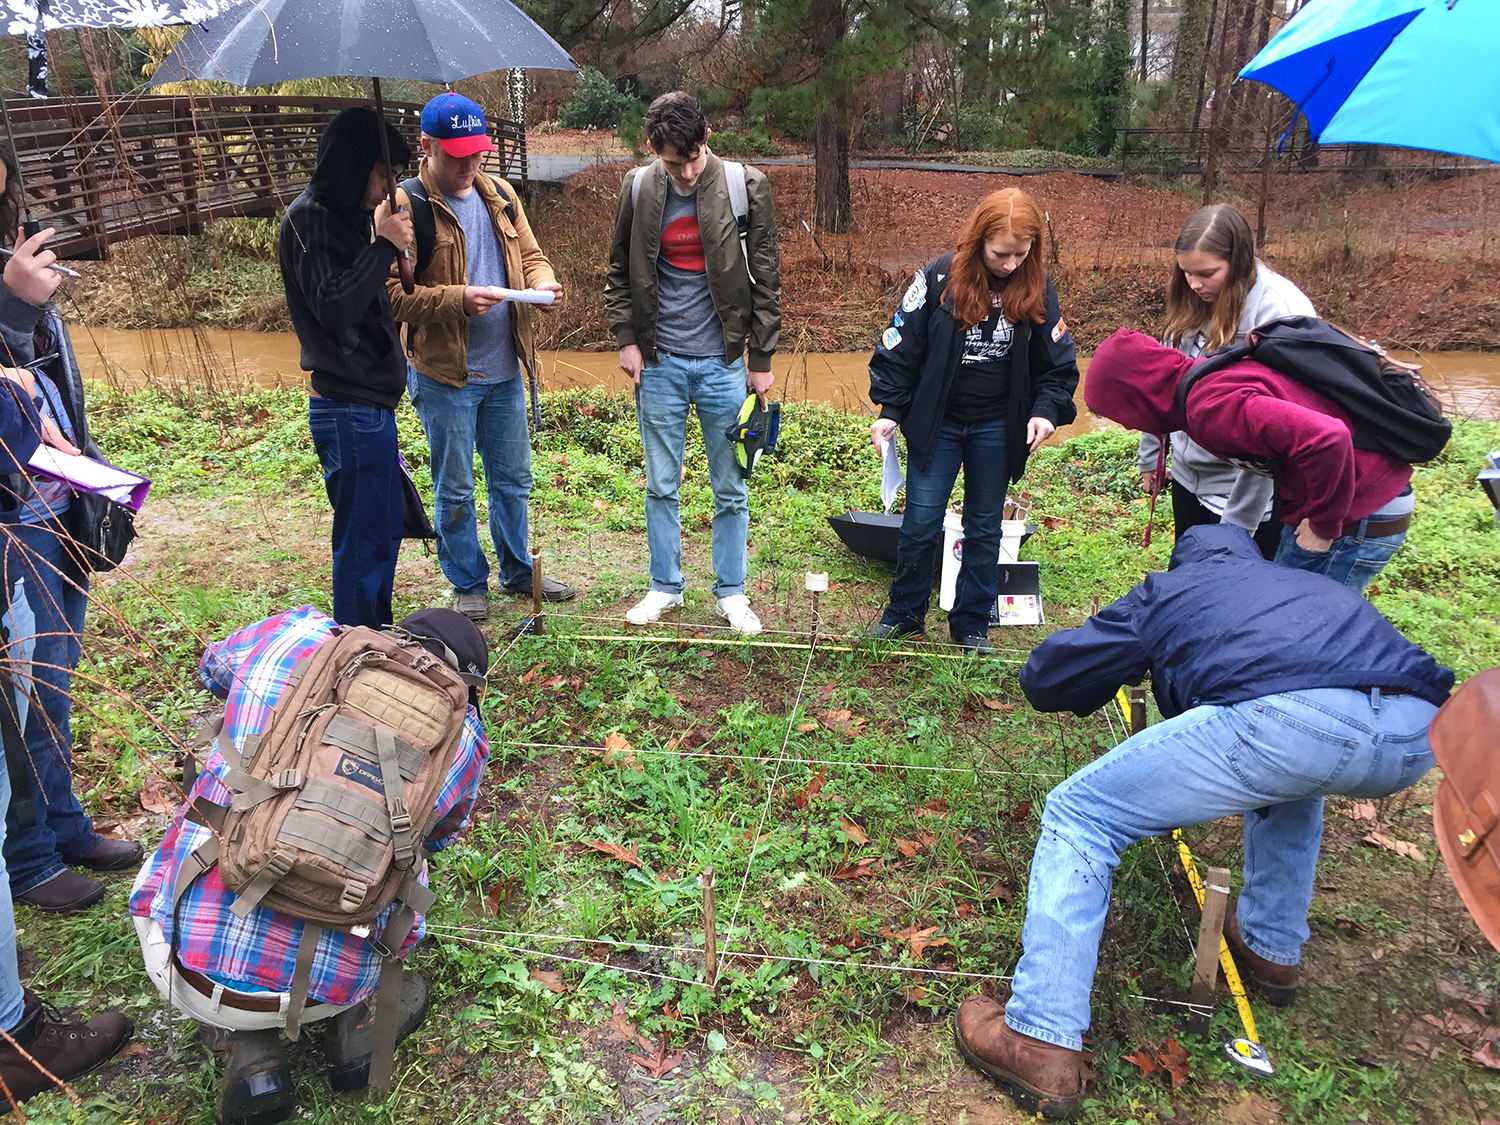 SFA students in Herbaceous Plants learning how plants grow in nature. Exciting times!!!